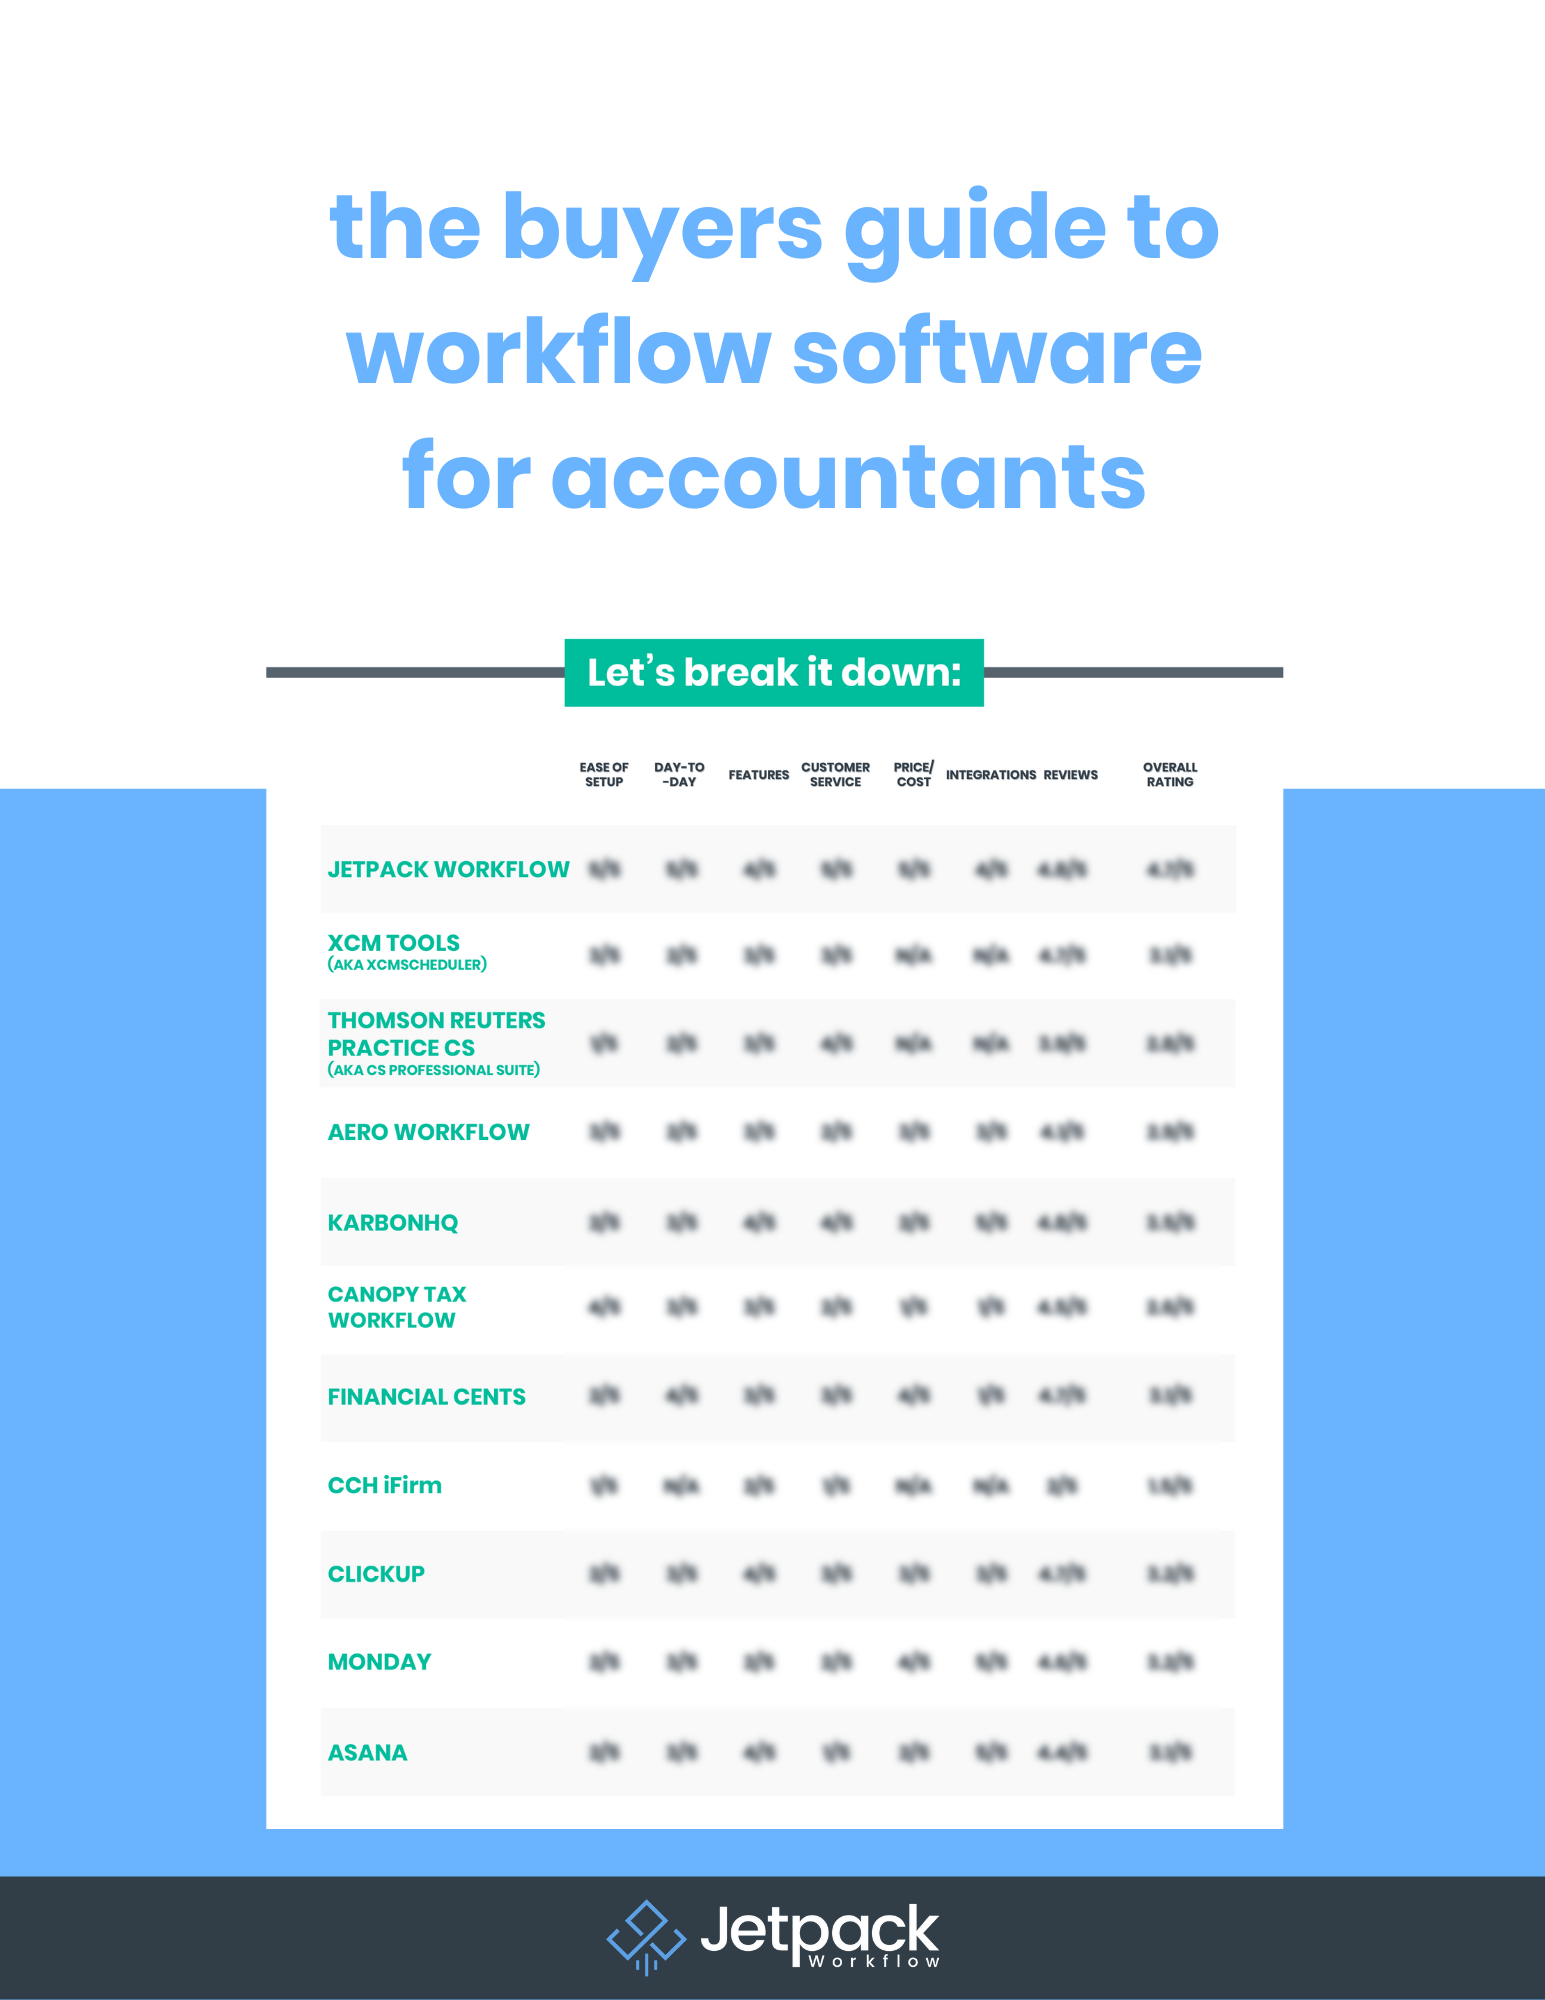 The Buyers Guide to Workflow Software for Accountants